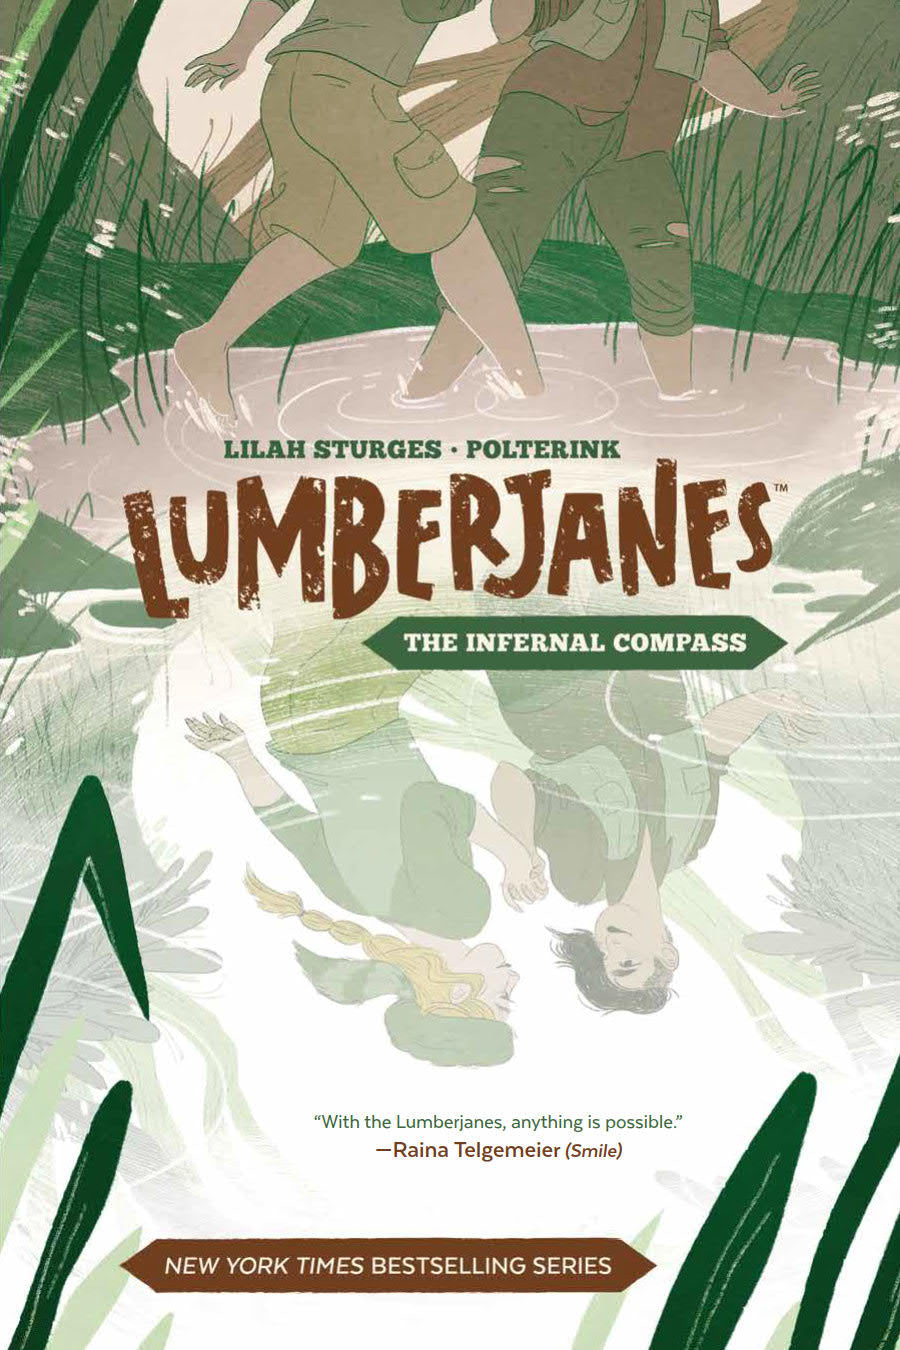 LUMBERJANES ORIGINAL GN VOL 01 INFERNAL COMPASS (C: 0-1-2)